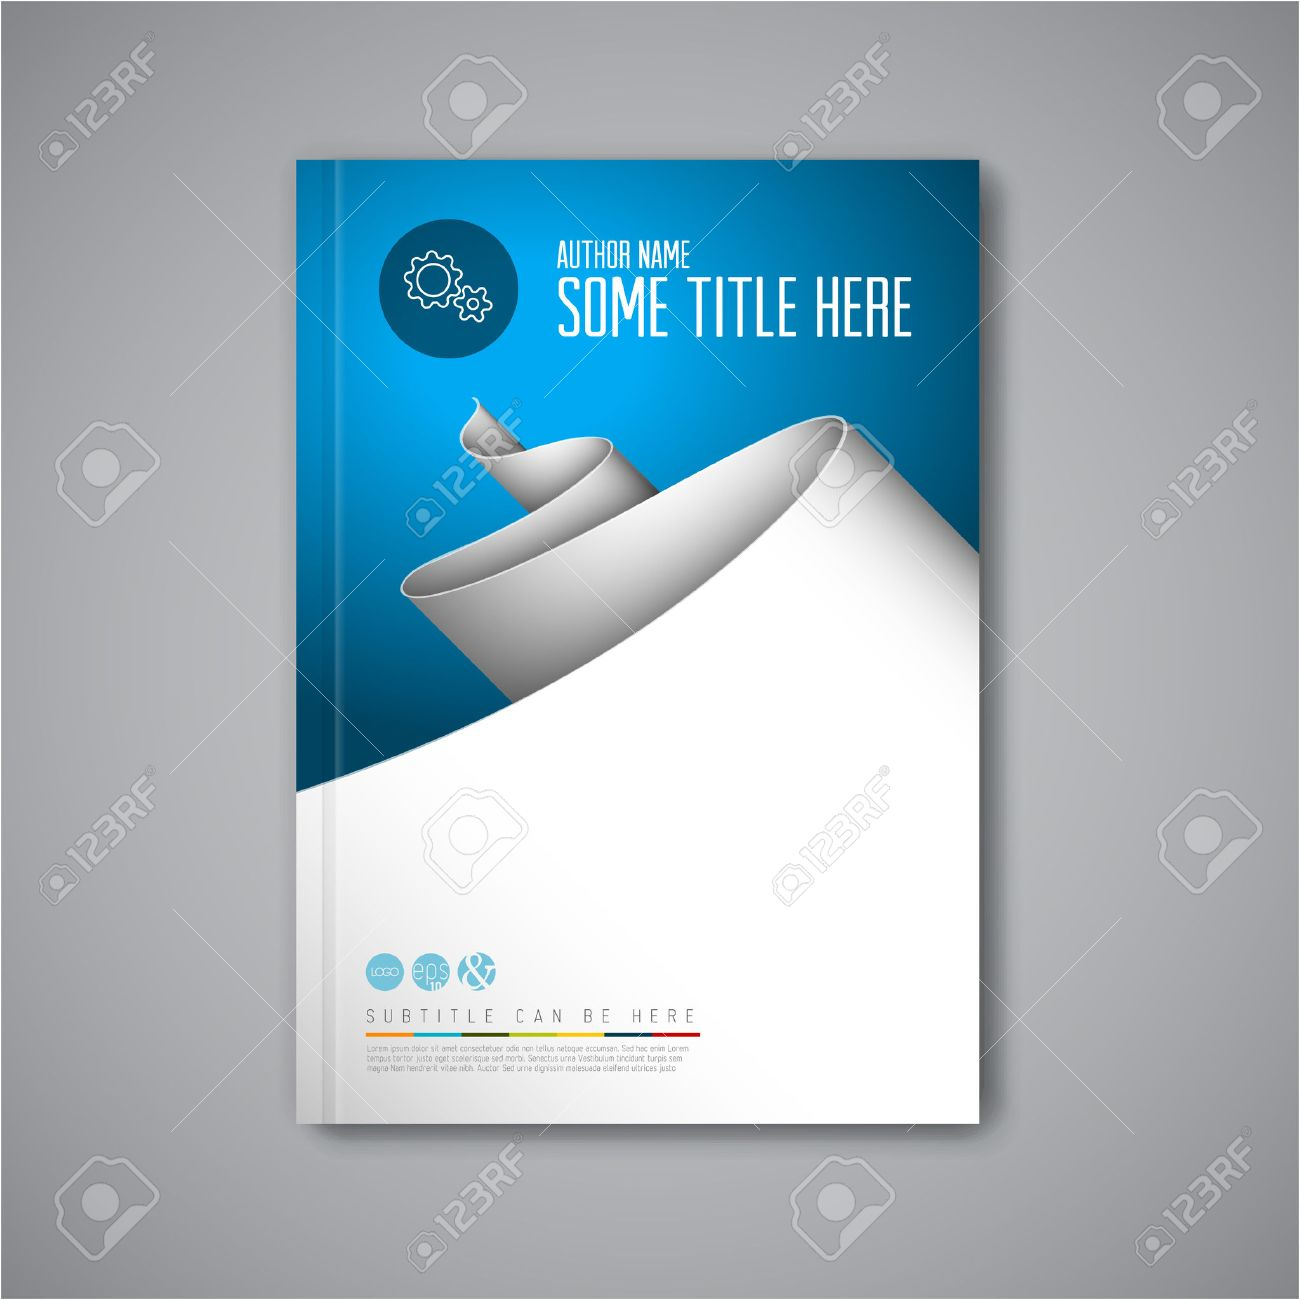 cover page design stock vector illustration and royalty cover page design modern vector abstract brochure book flyer design template paper